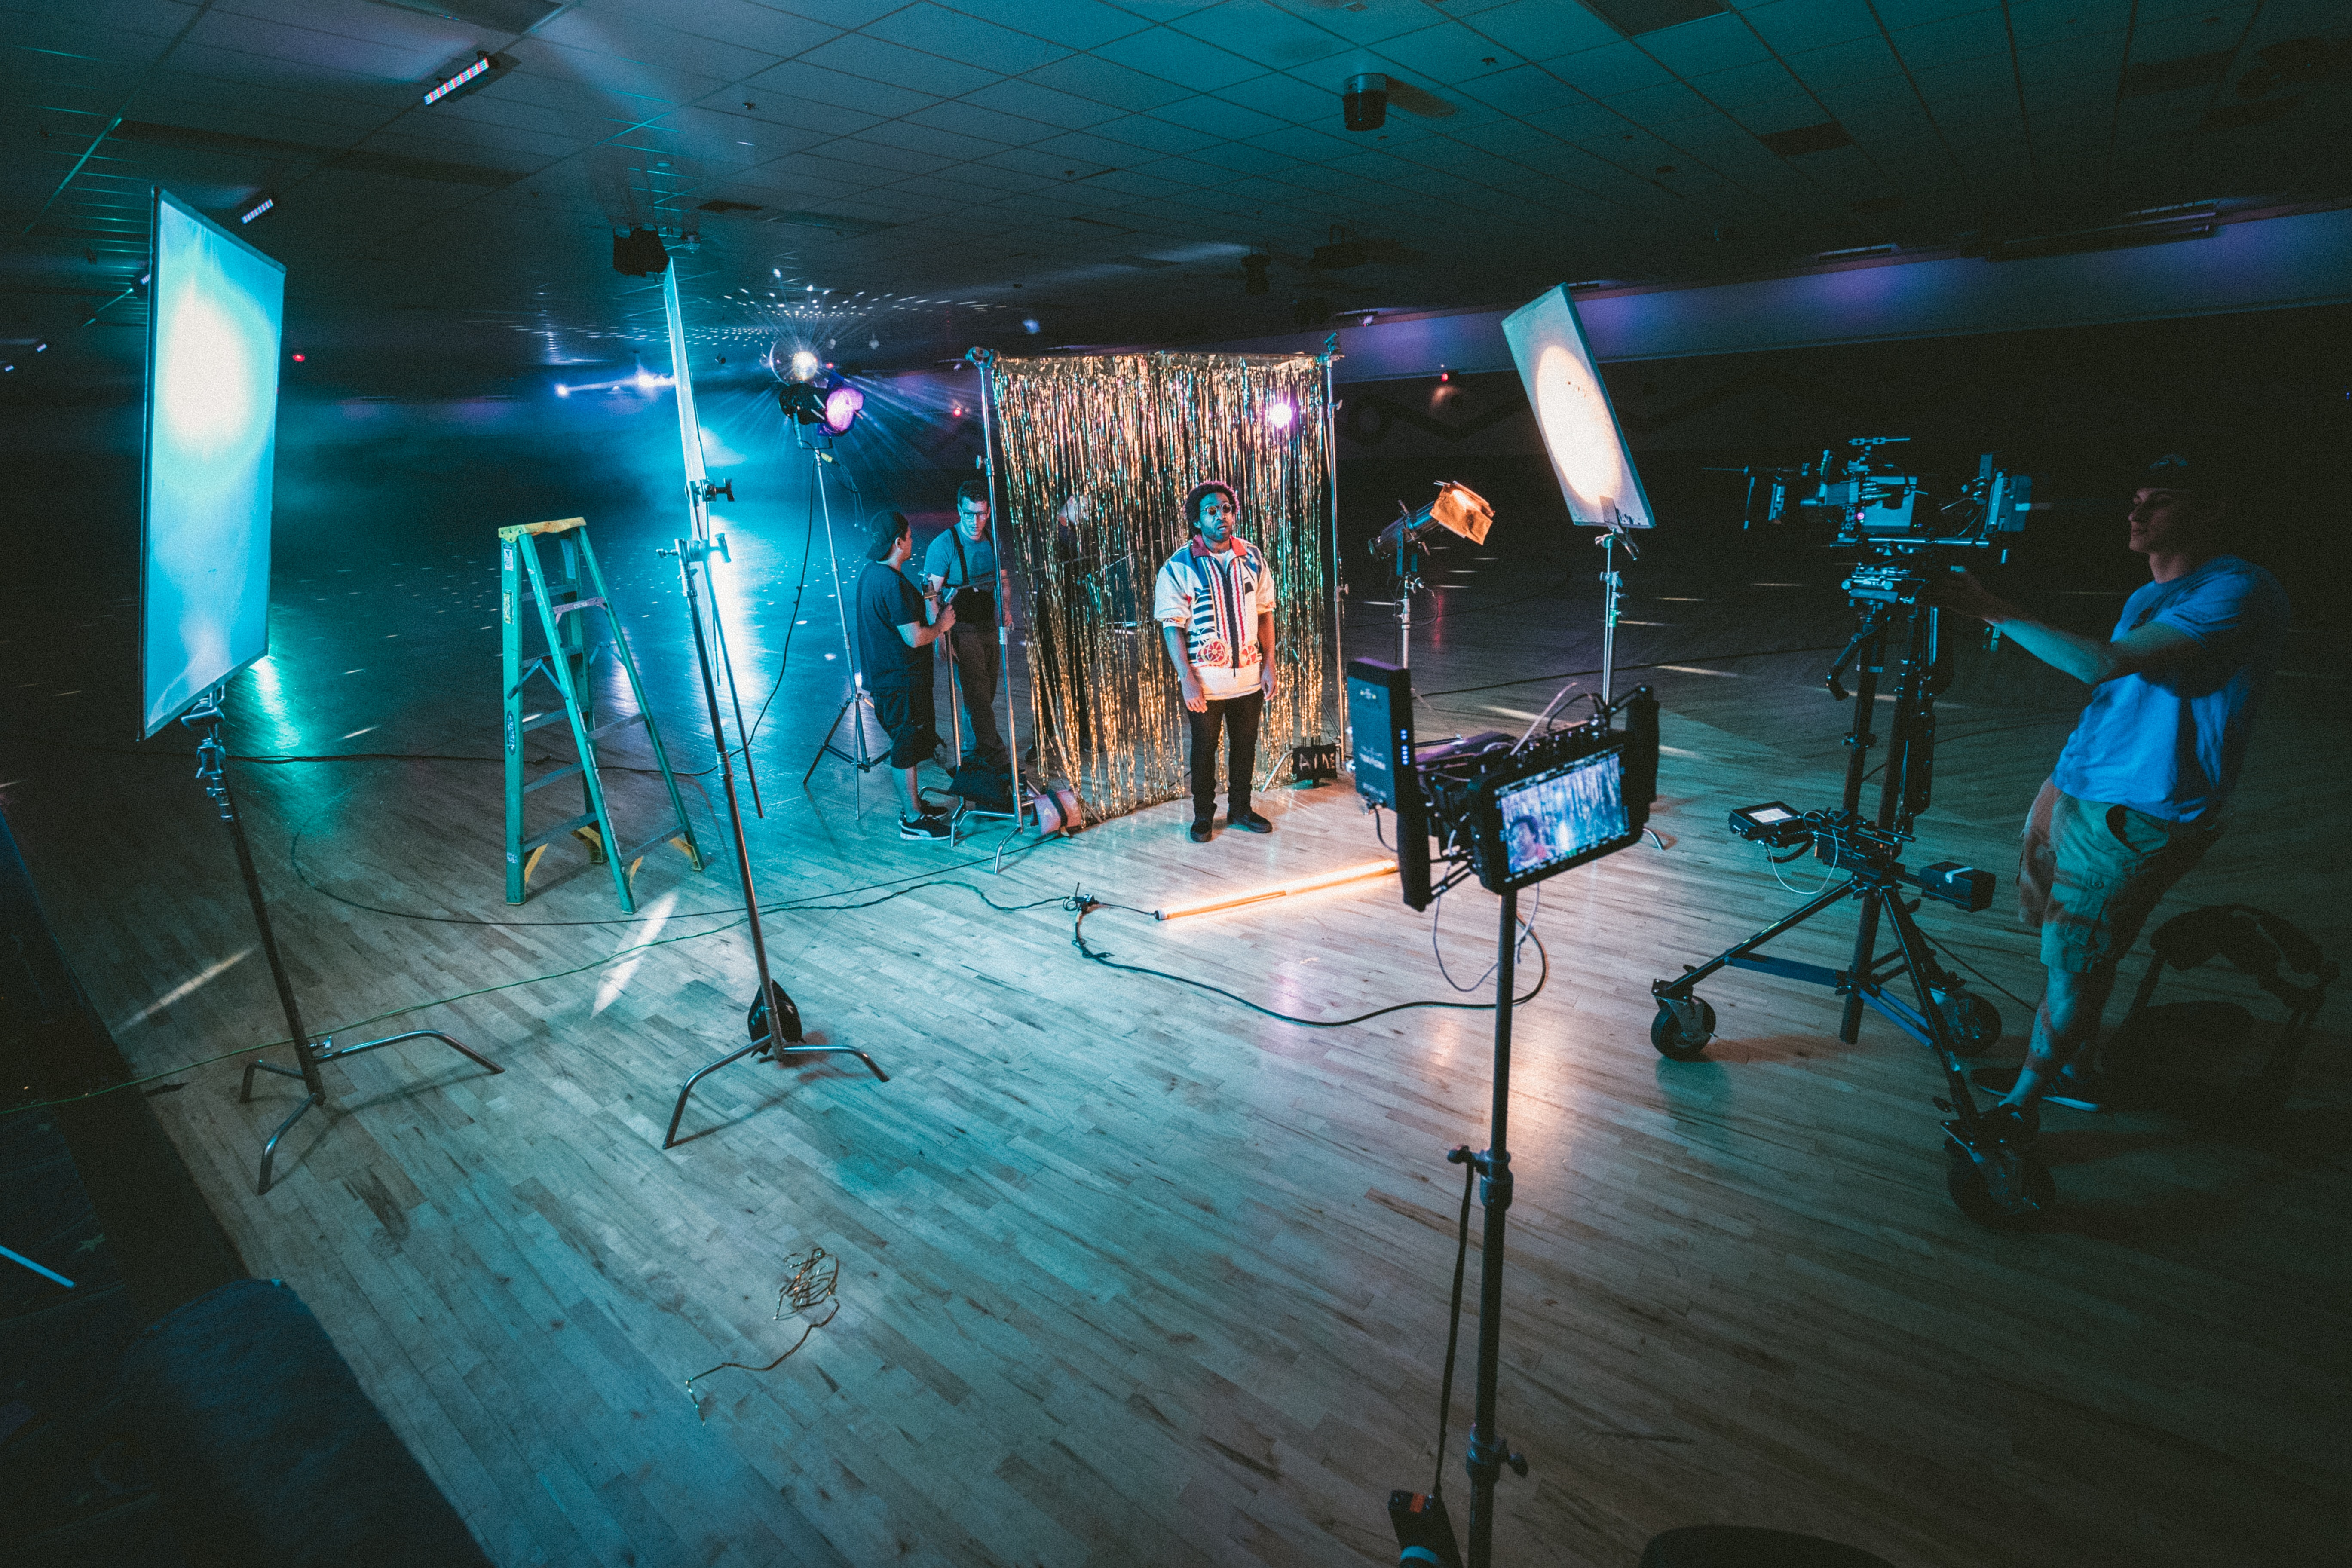 man standing in front of cameras with string lights background